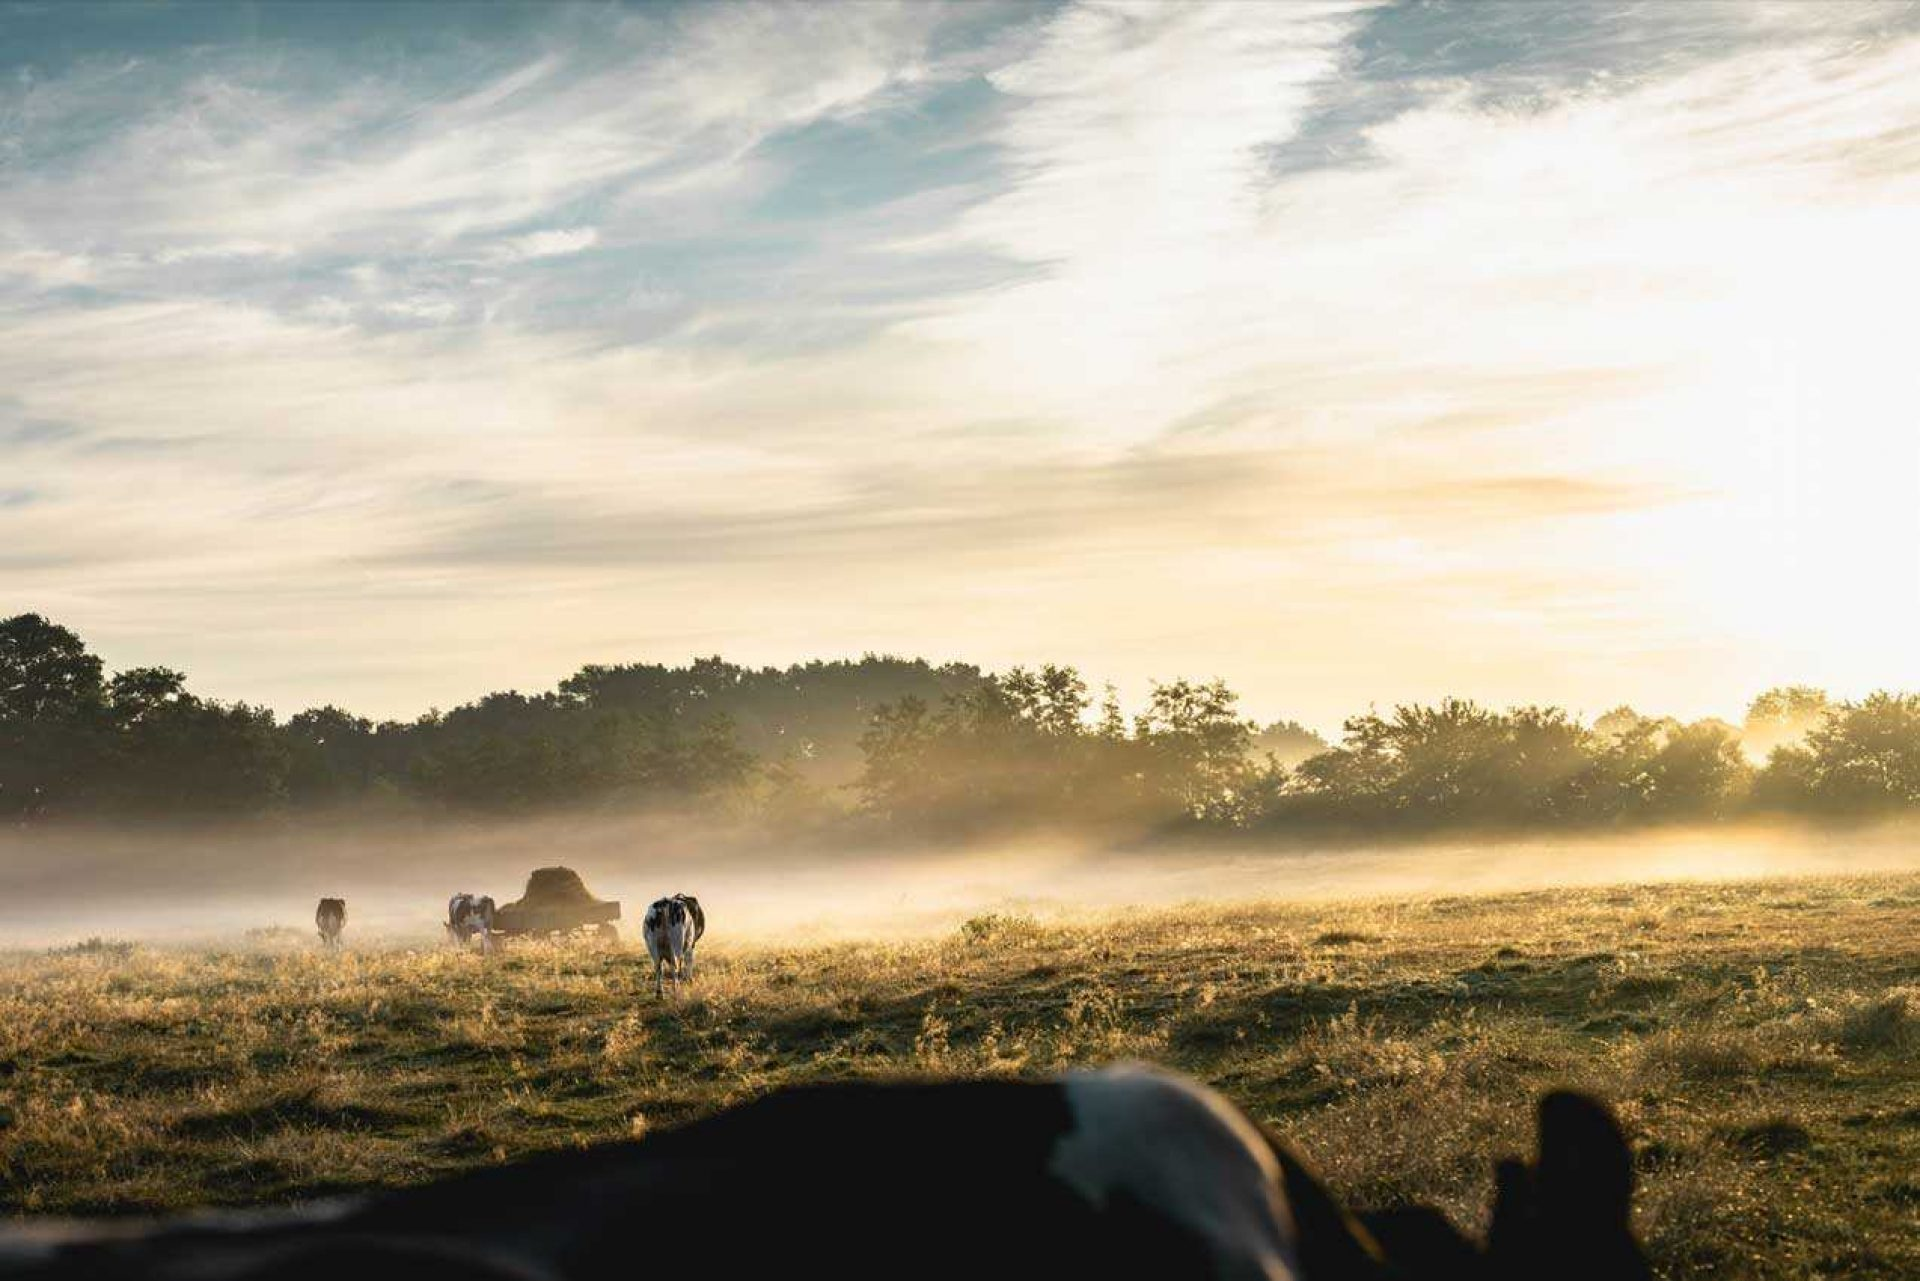 Cows in field with fog hovering over the ground